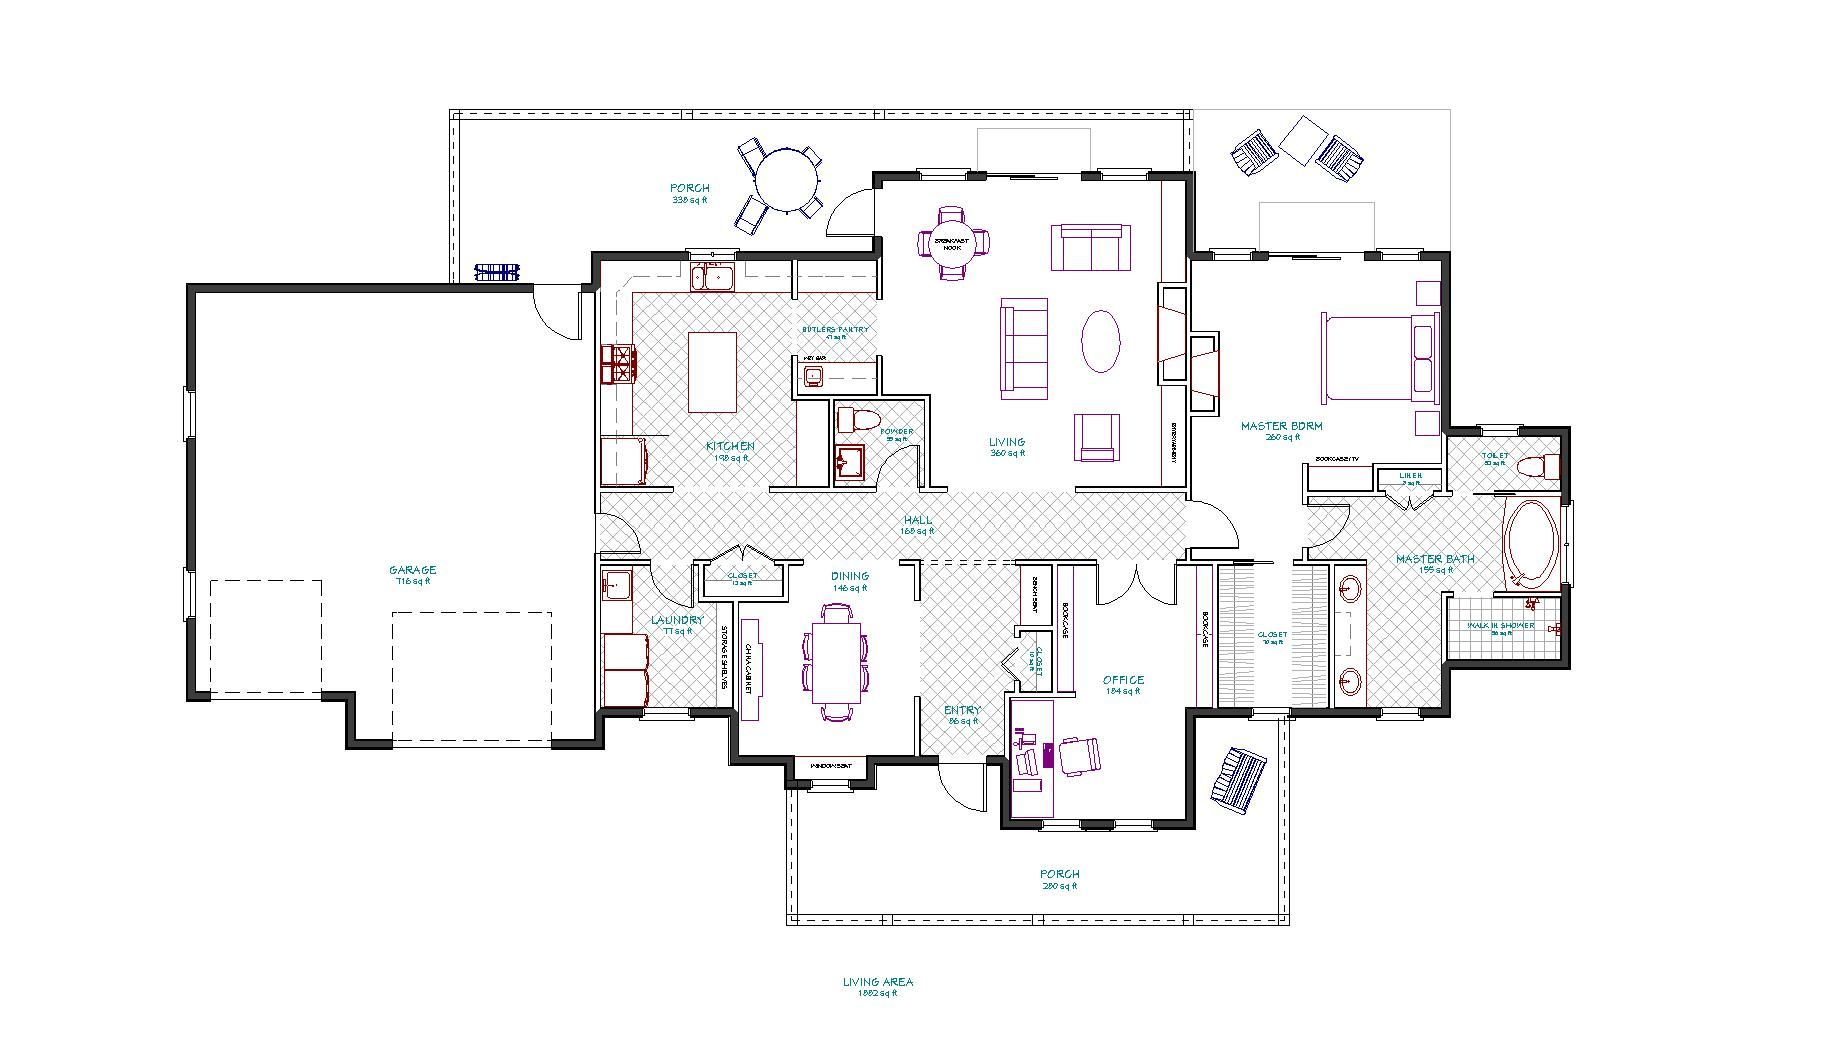 1000 images about house plans on pinterest 1 of 1 cabin plans and house plans